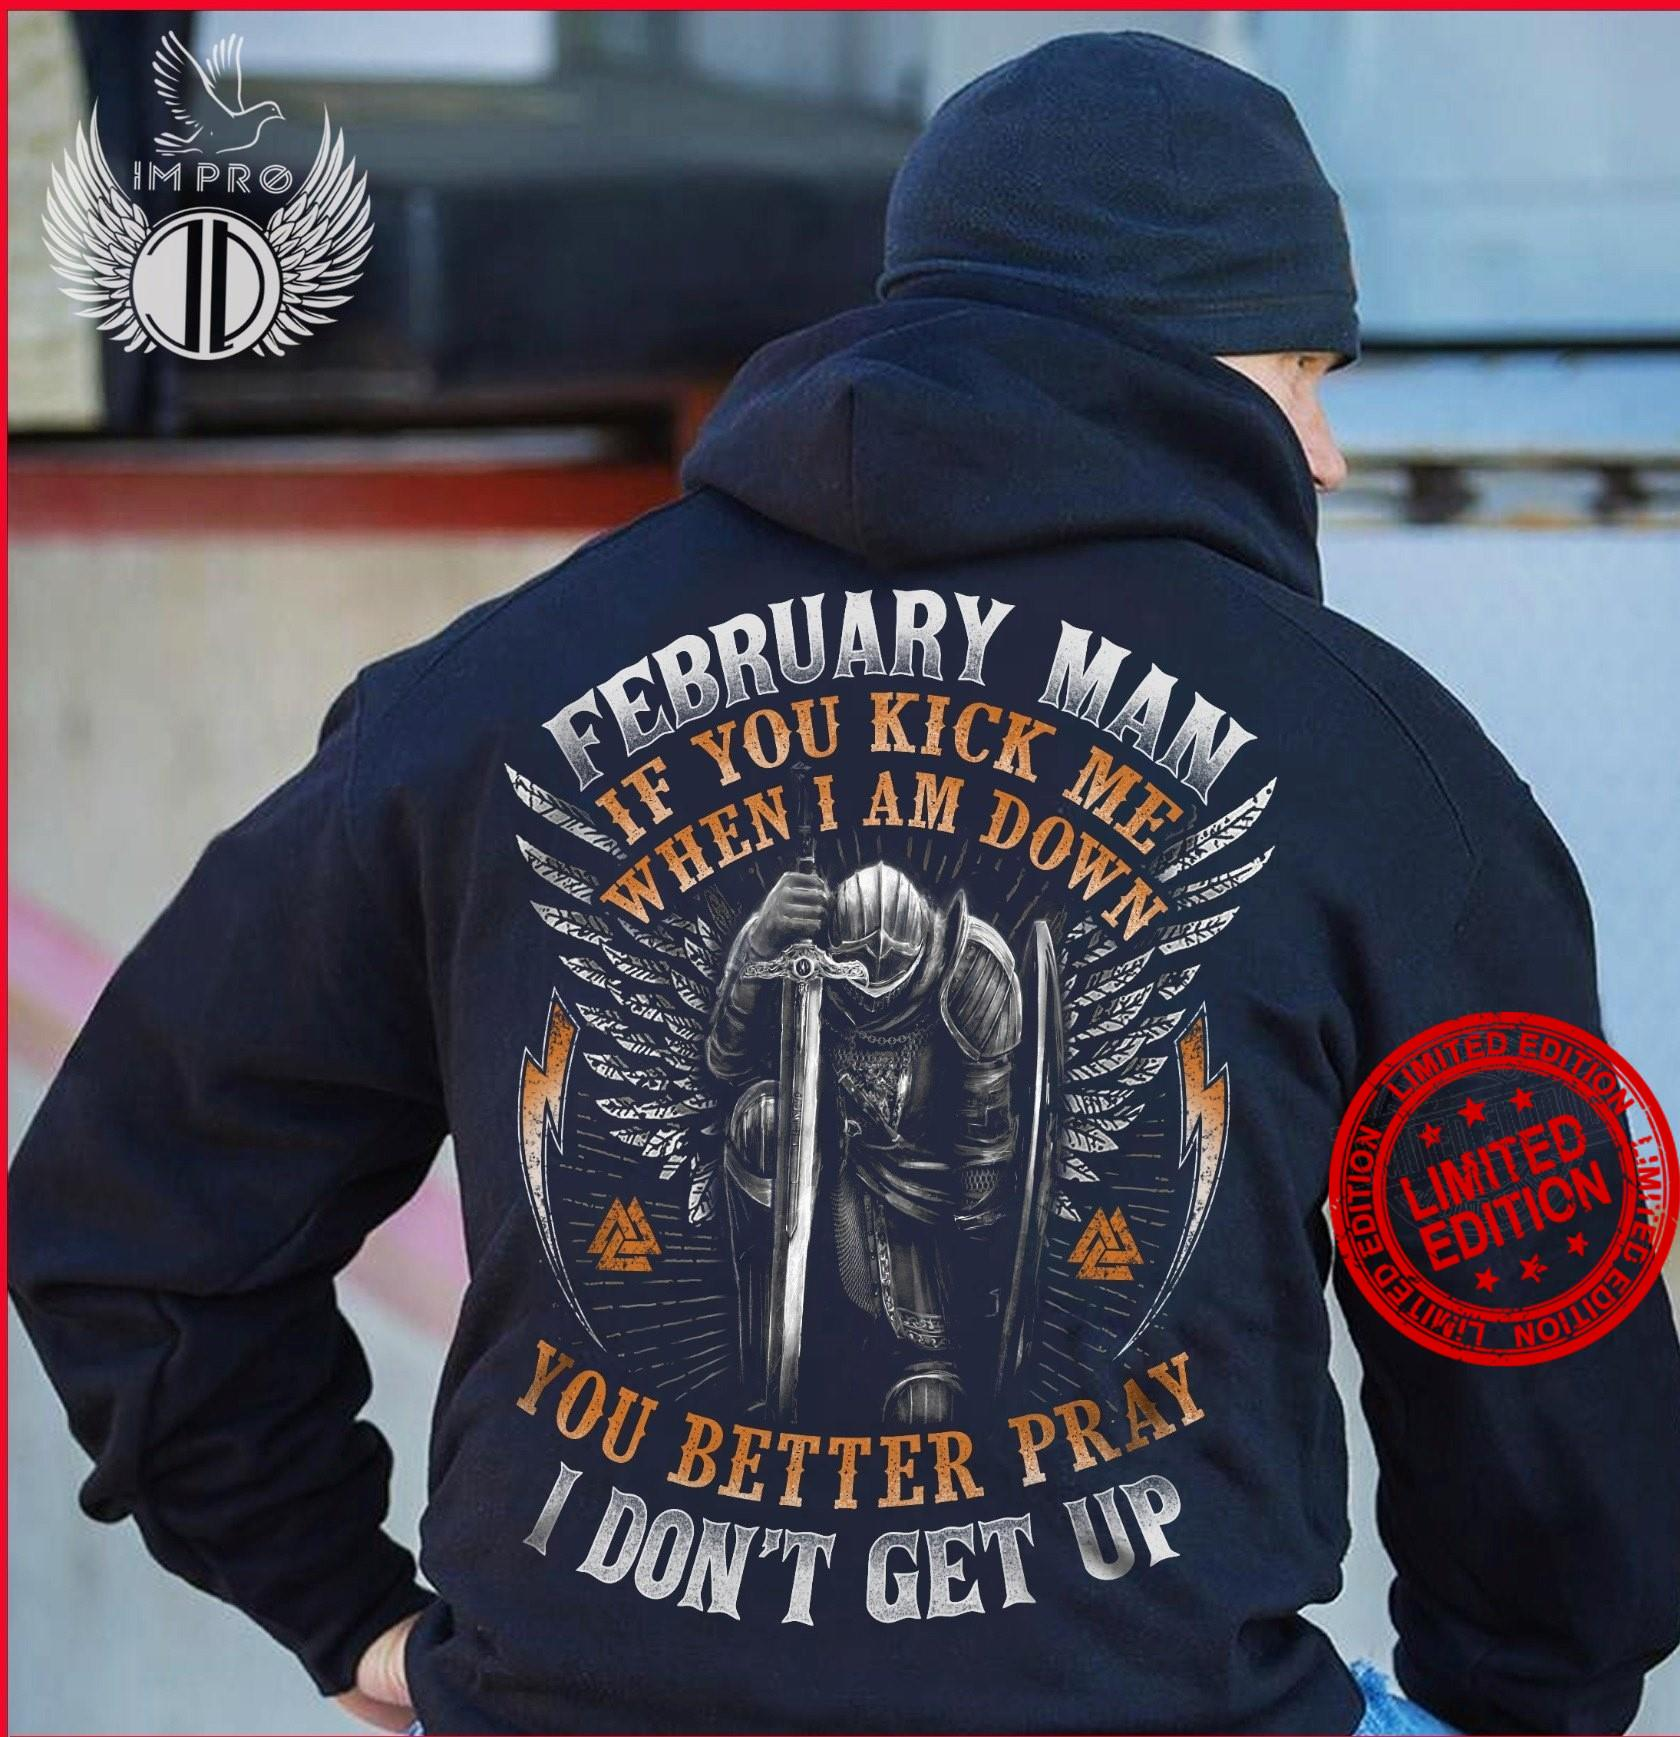 February Man If You Kick Me When I Am Down You Better Pray I Don't Get Up Shirt